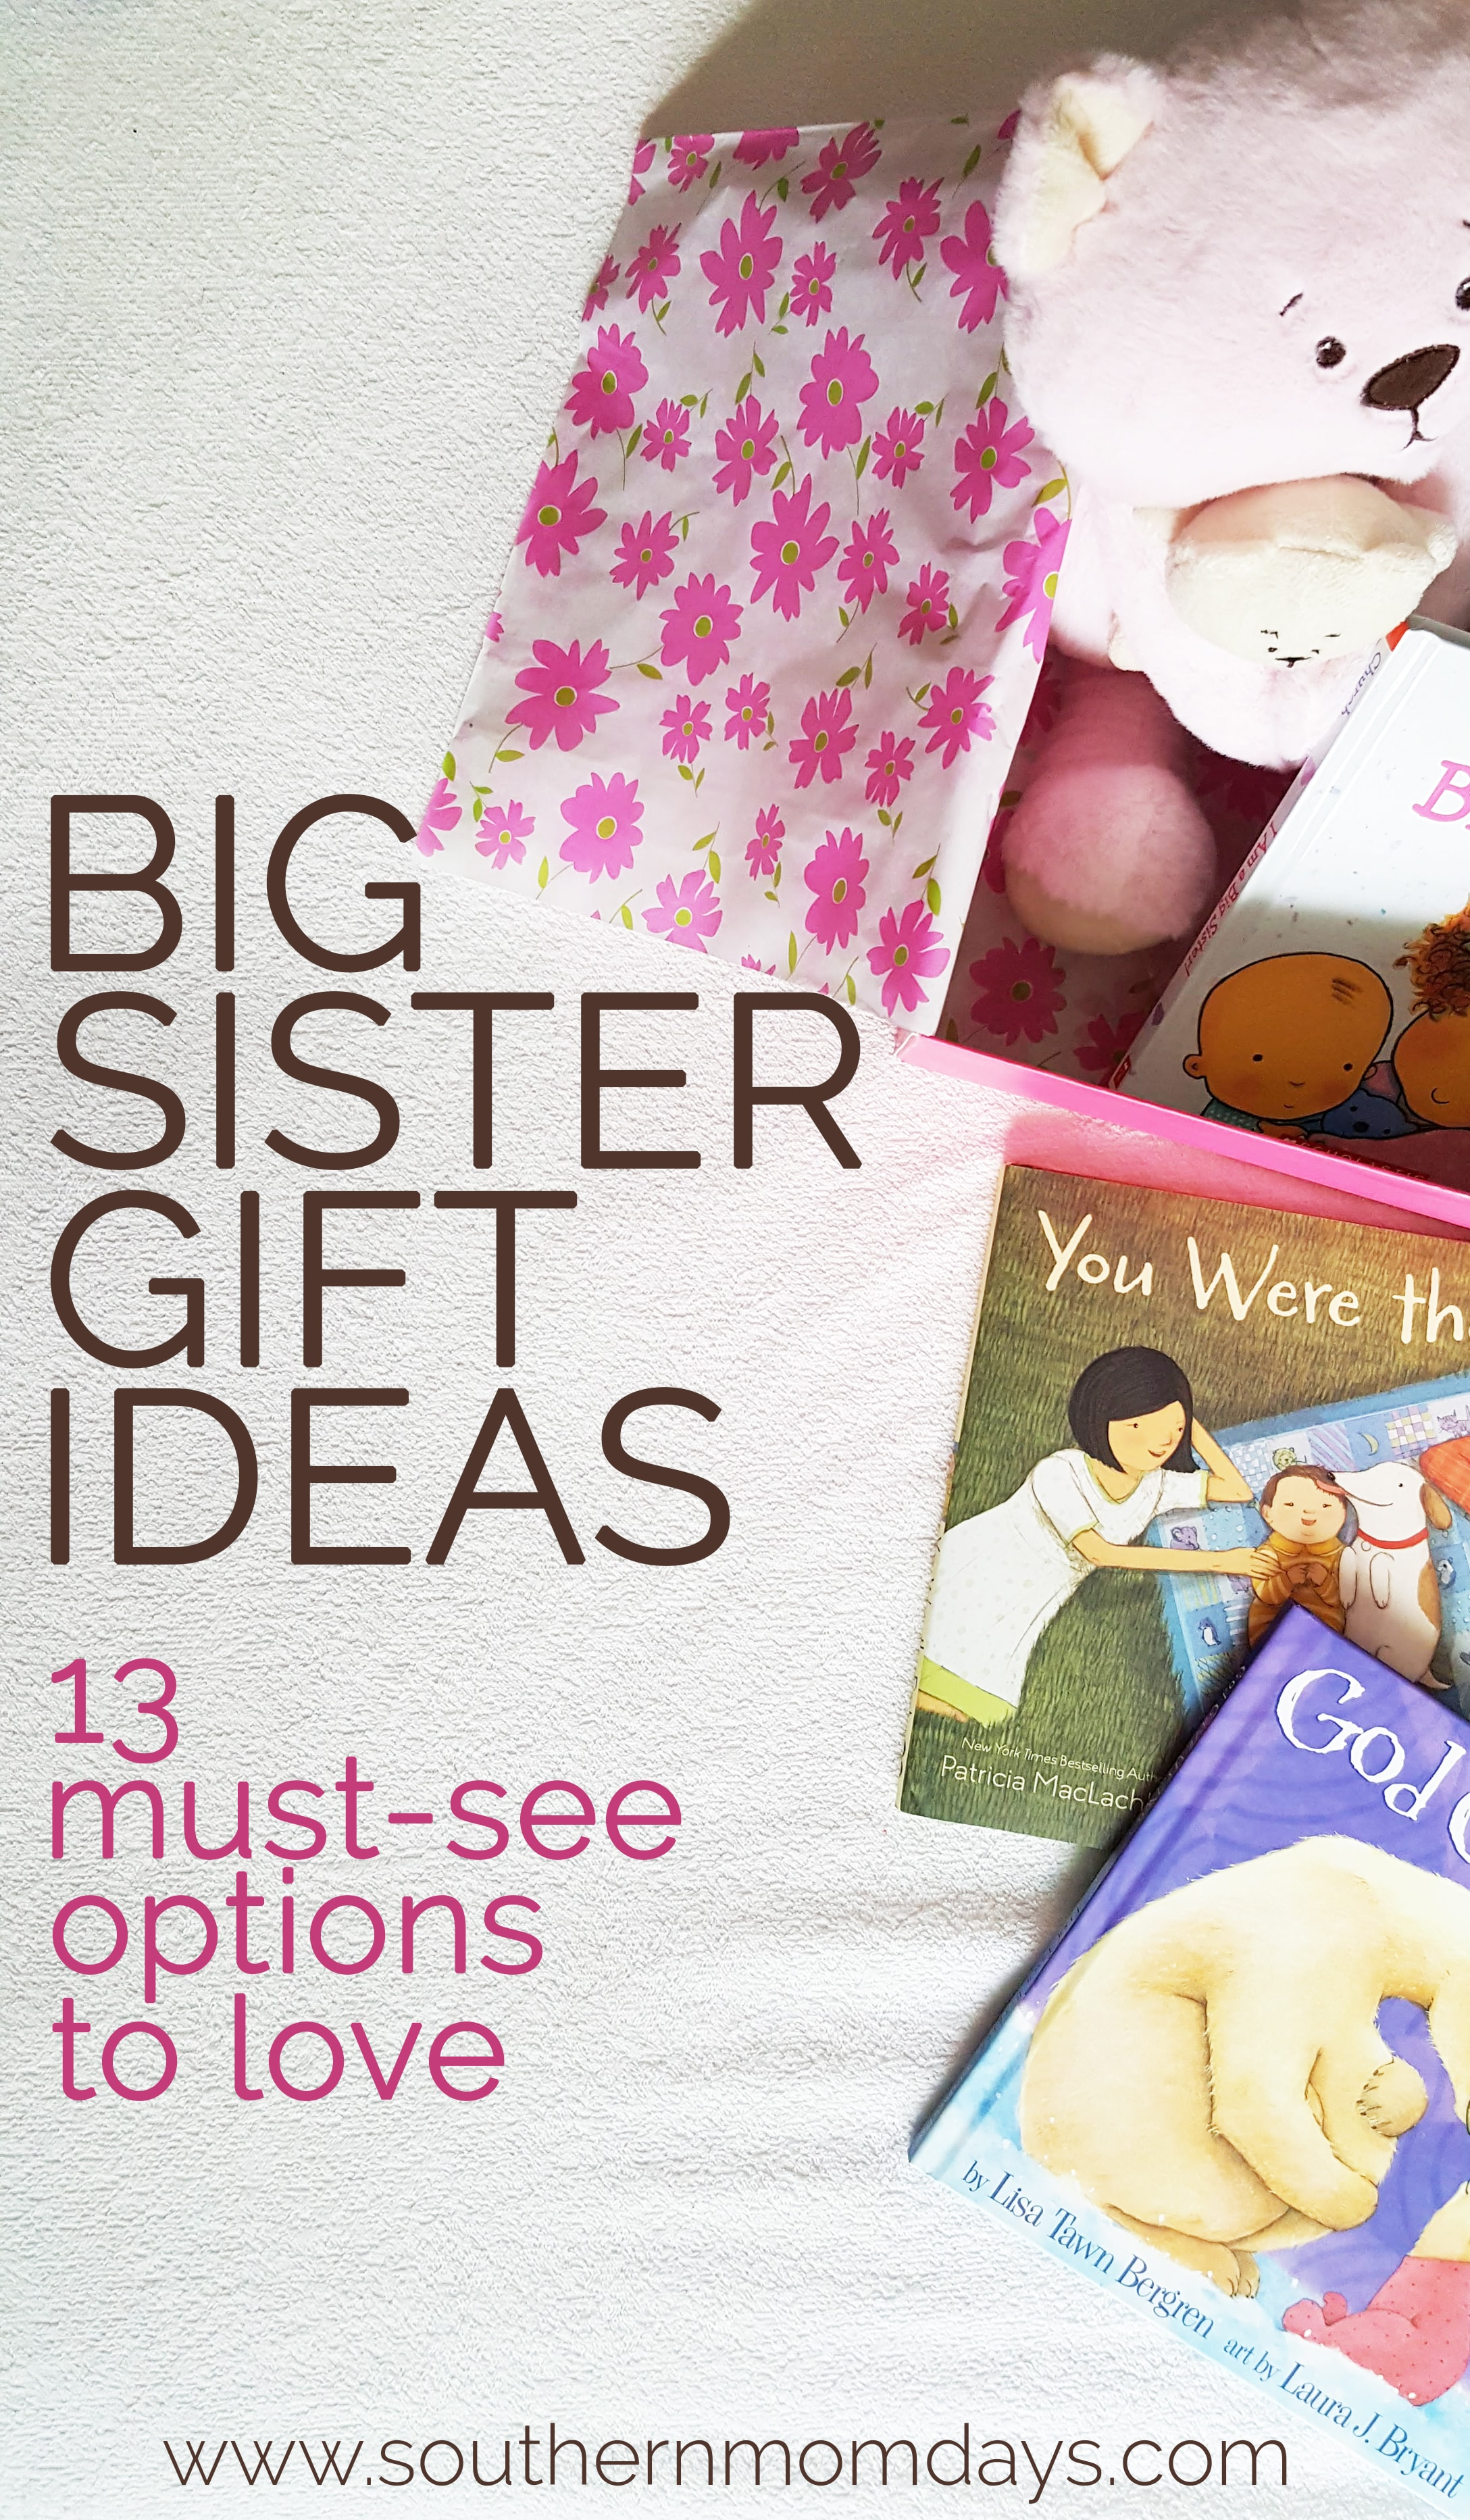 Big Sister Gift Ideas for Toddler from Baby for Hospital, featured on Southern Momdays